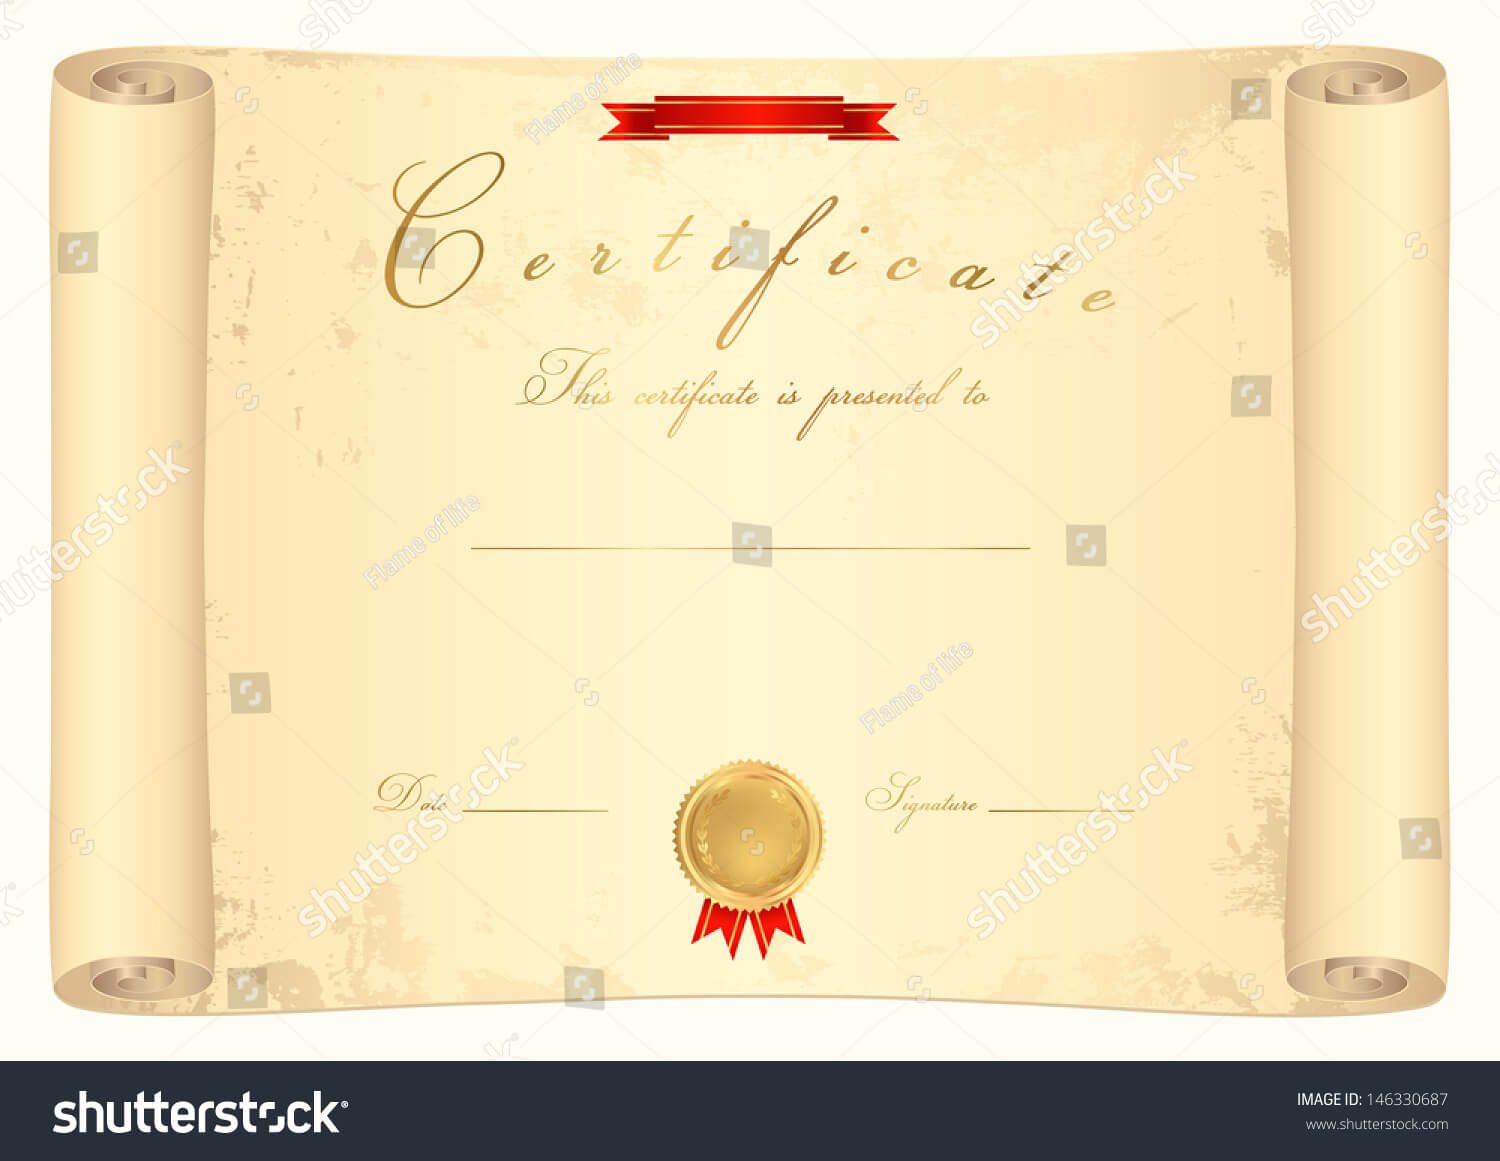 Scroll Certificate Completion Template Sample Background Regarding Certificate Scroll Template